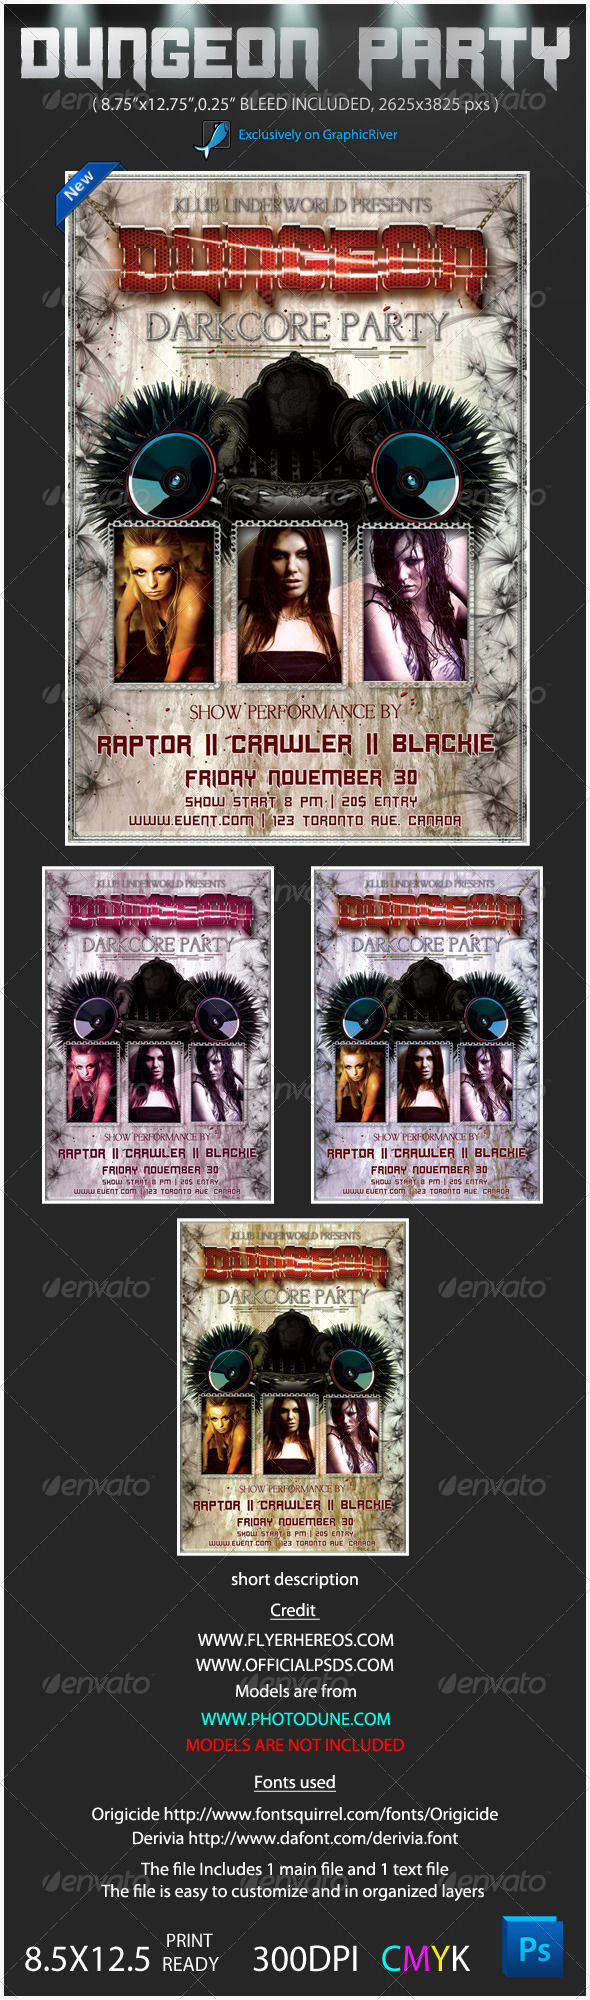 Graphic River Darkcore Party Poster Flyer Print Templates -  Flyers  Events  Clubs & Parties 808087